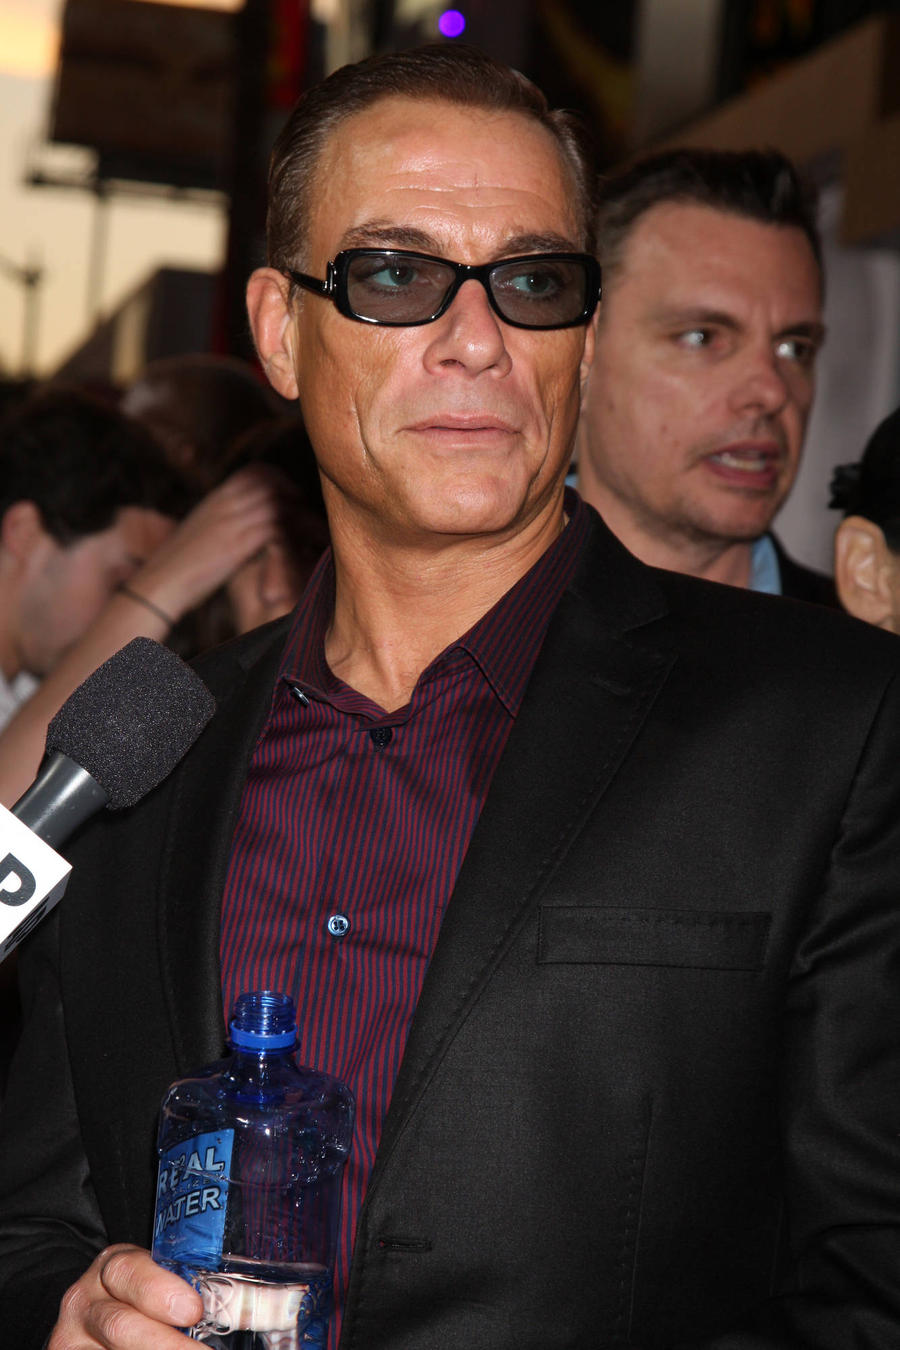 Jean-claude Van Damme In Pain Over Brussels Attacks